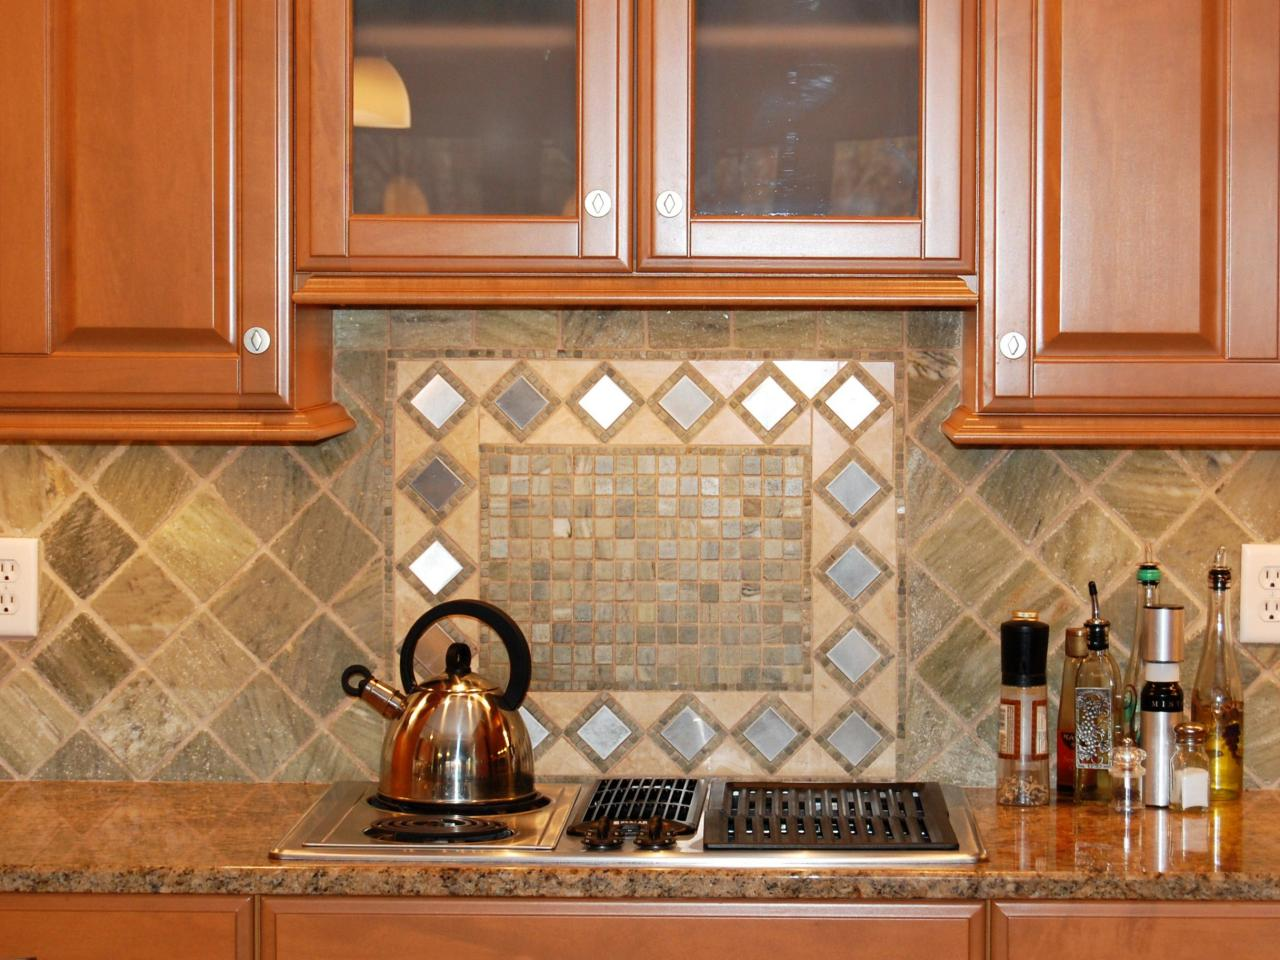 How to plan and prep for a tile backsplash project diy related to planning tile ceramic dailygadgetfo Images